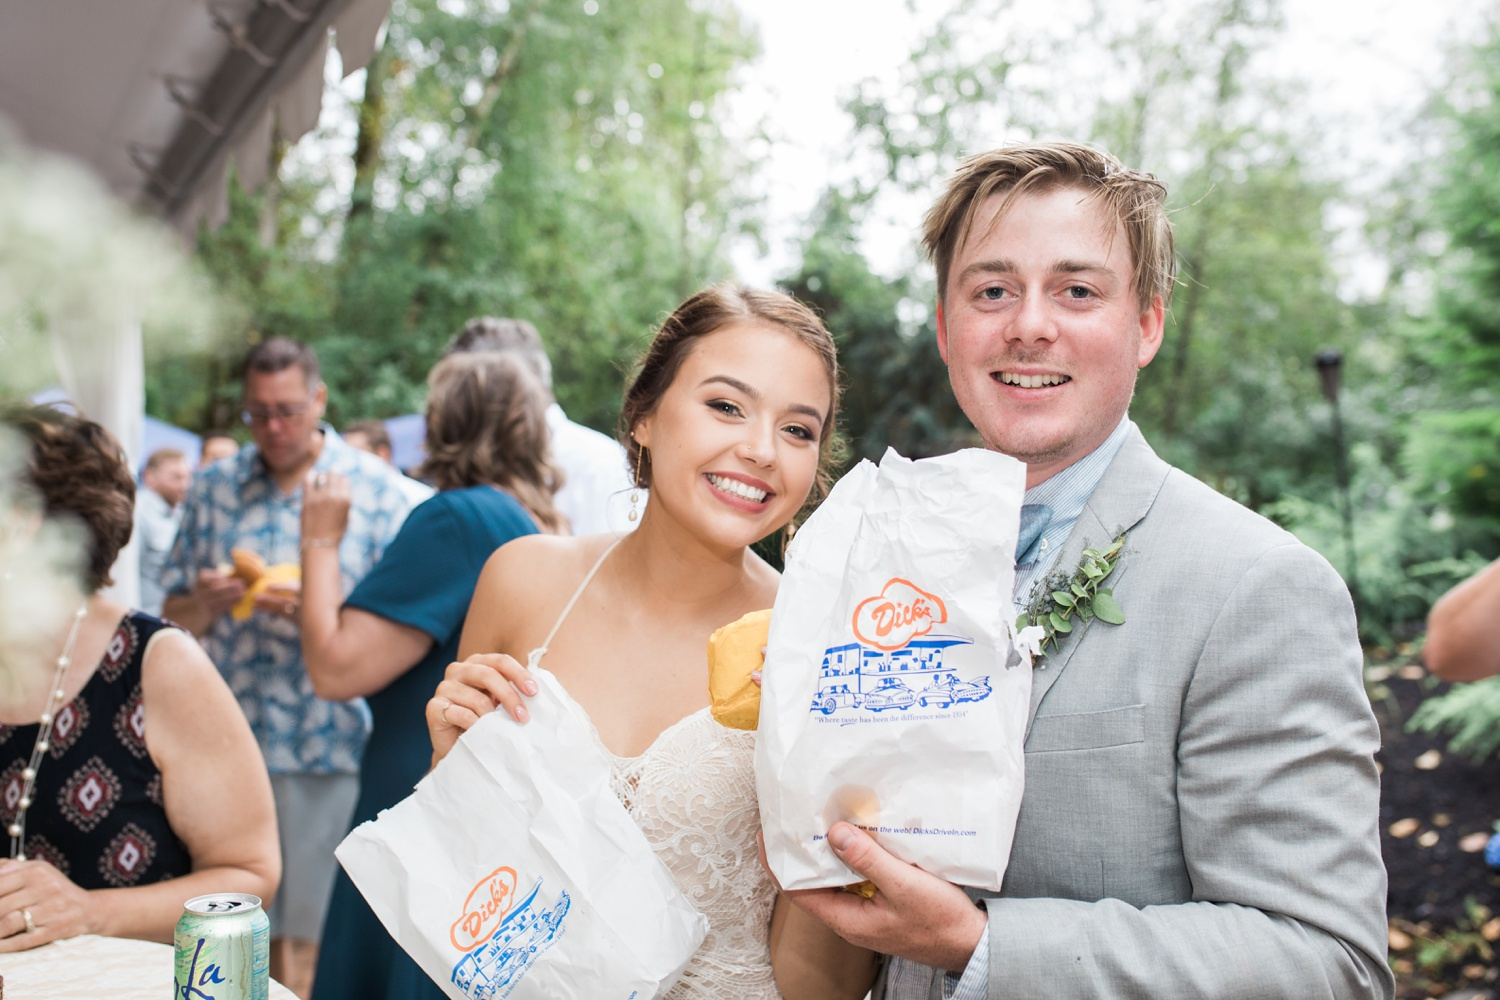 A bride and groom smile as they hold to-go bags after their summer wedding at Maroni Meadows in Snohomish, a wedding venue near Seattle, WA. | Joanna Monger Photography | Seattle & Snohomish Photographer